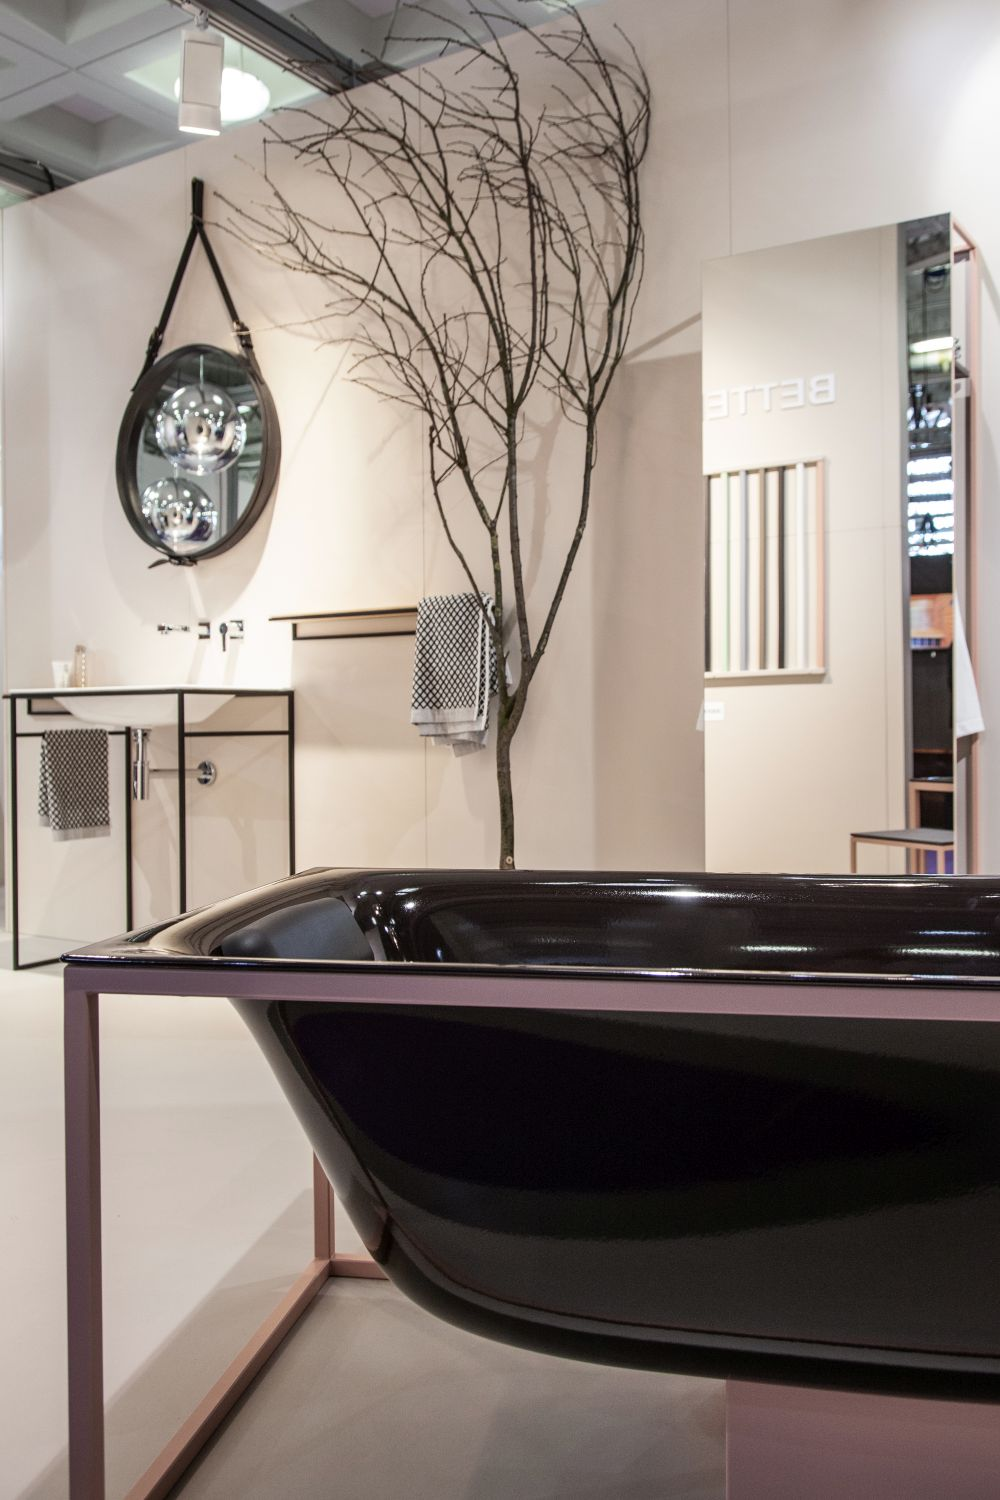 The same tub is available in a darker hue.